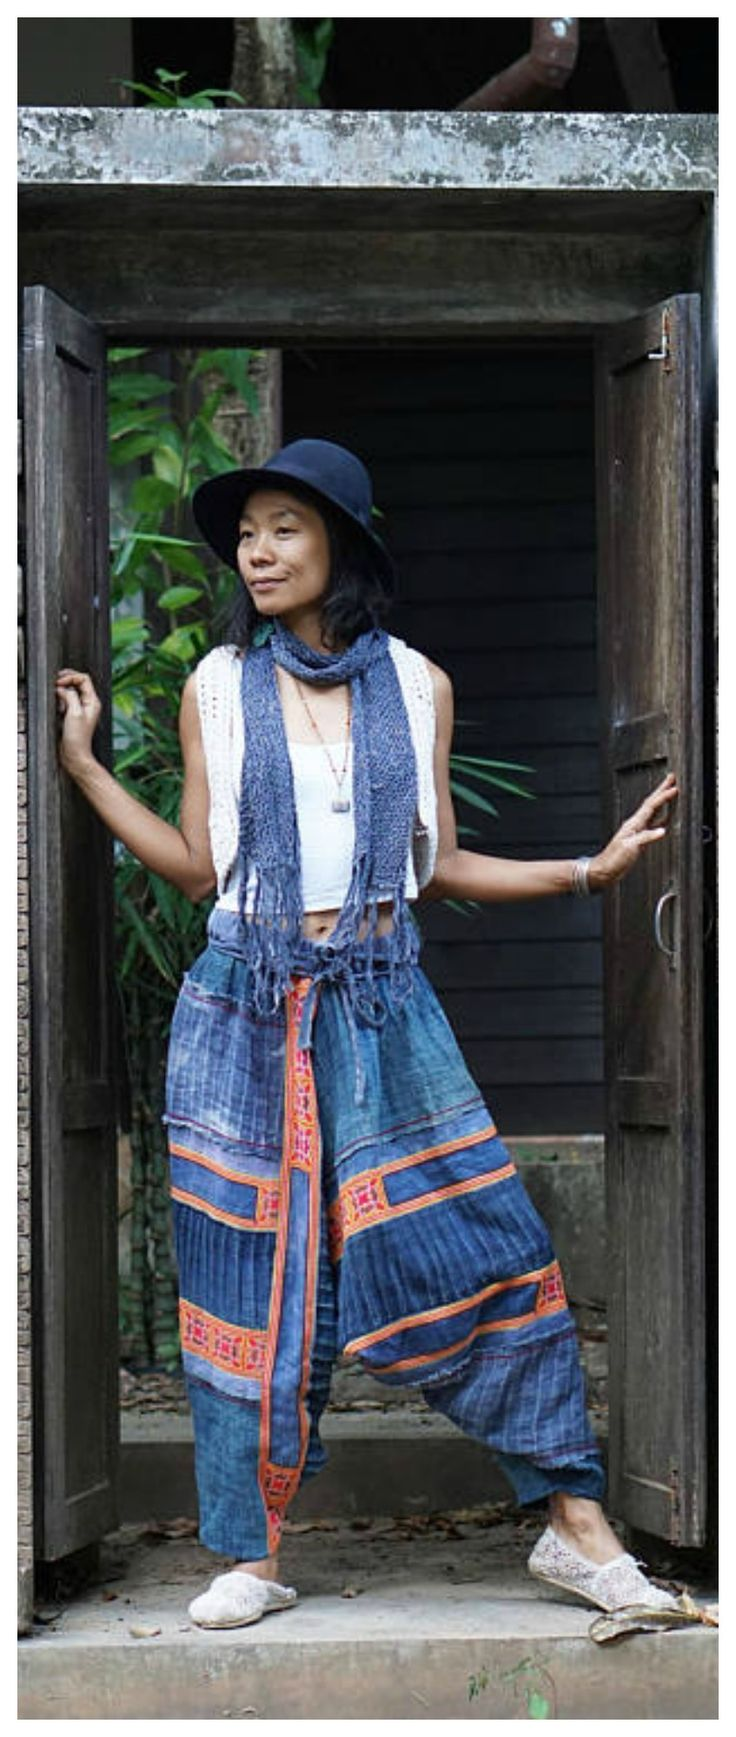 Hmong clothing, beautiful Hmong harem pants patchwork, beautiful cross stiches embroiderie